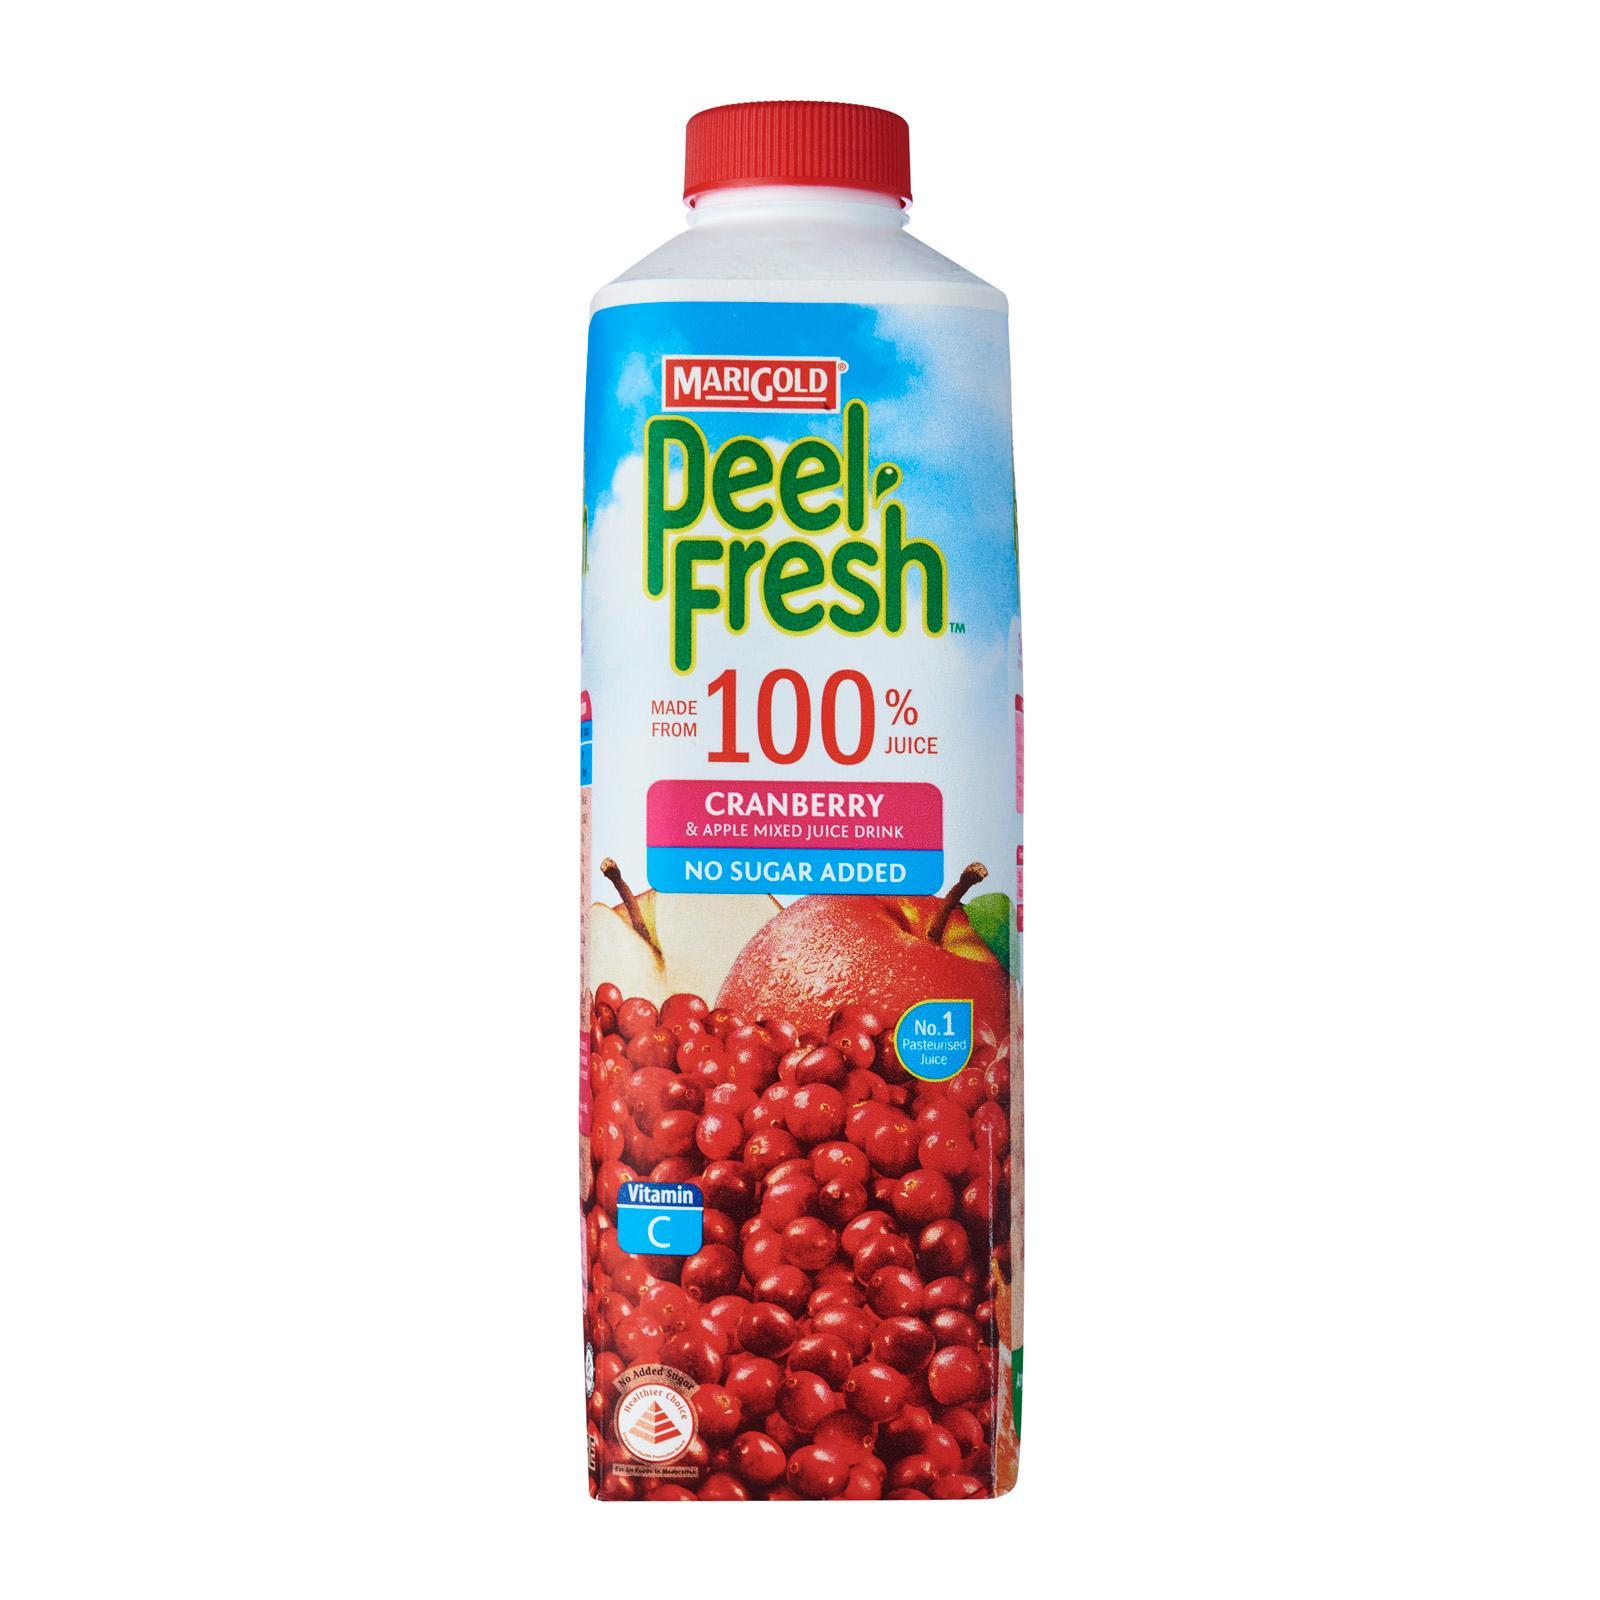 MARIGOLD PEEL FRESH Cranberry & Apple Juice Drink - No Sugar Added 1L